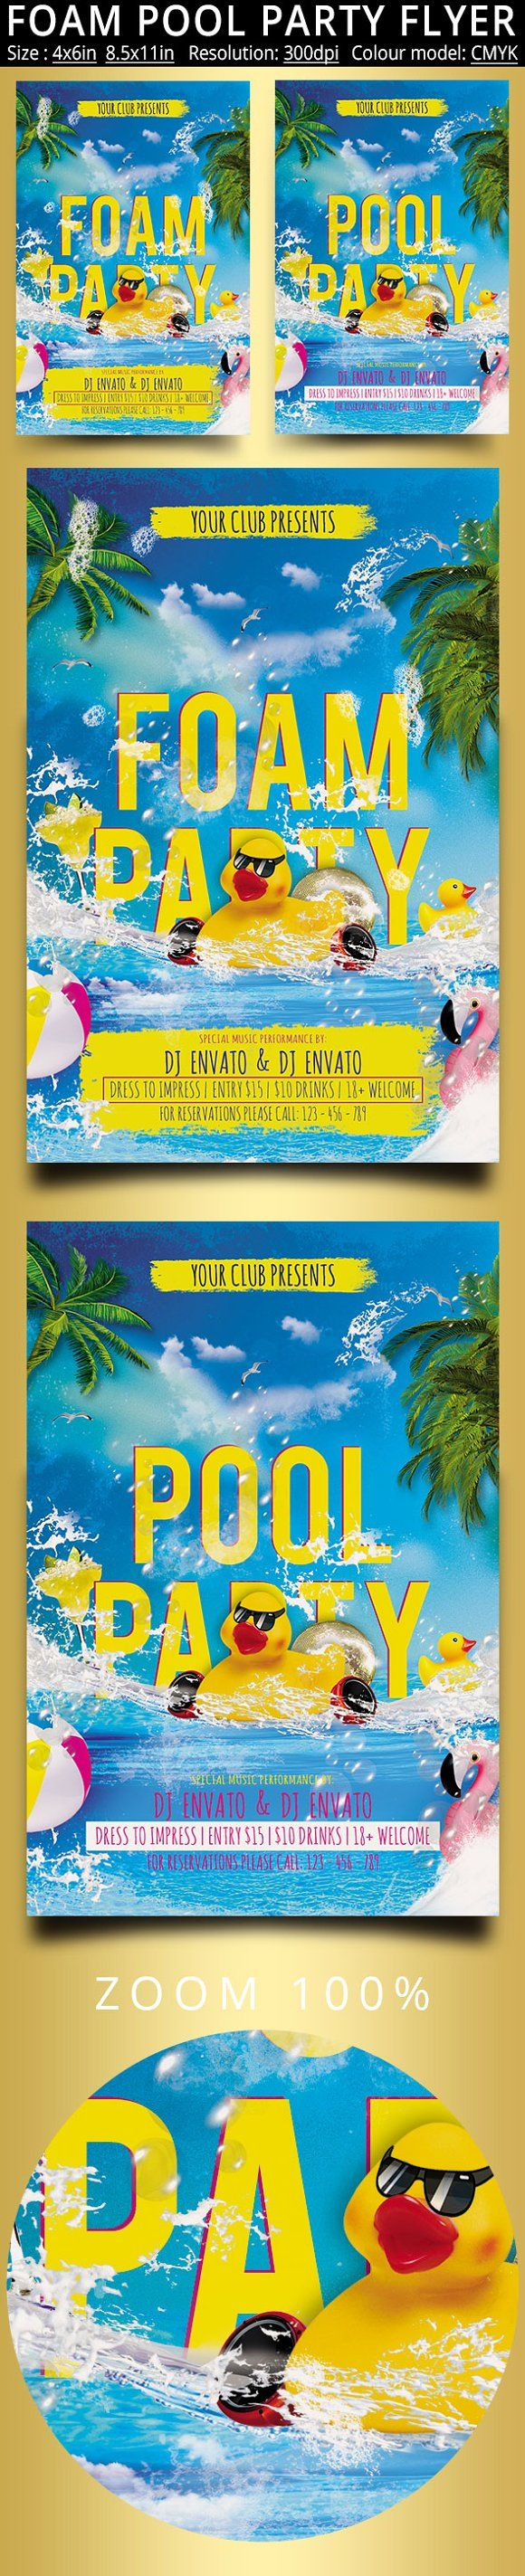 Foam Pool Party Flyer by oloreon on @creativemarket foam, party, beach, summer, spring, flyer, poster, club, sexy, foam party, tropical, sun, modern, festival, water, template, beer, vip, music, pool, spring break, alcohol, glass, beach party, drink, cocktail, holiday, event, pool party, summer party